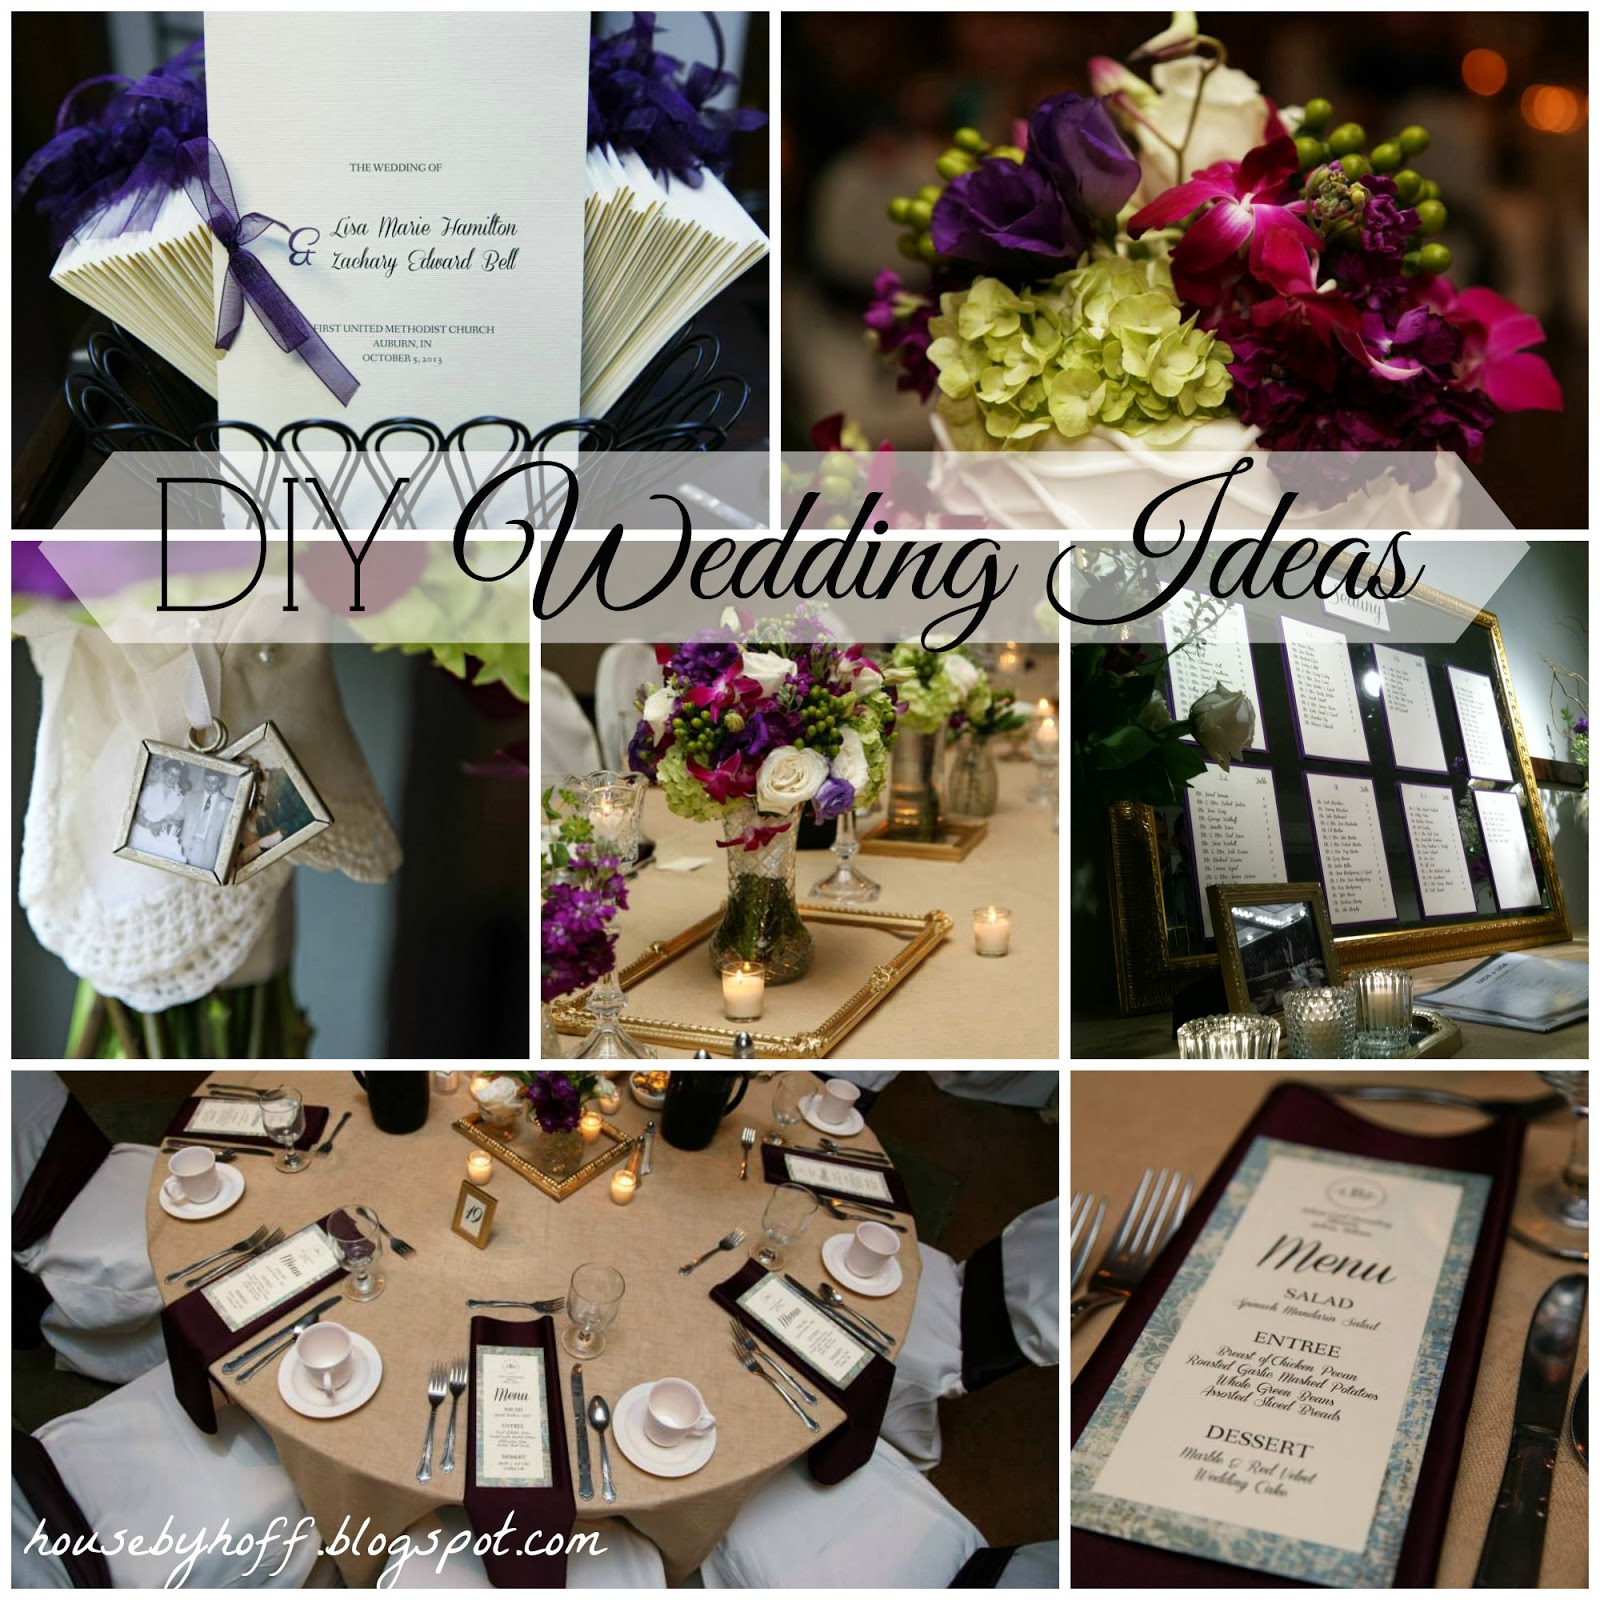 Superb Diy Wedding Ideas Real Diy Wedding Centerpieces Diy Wedding Ideas